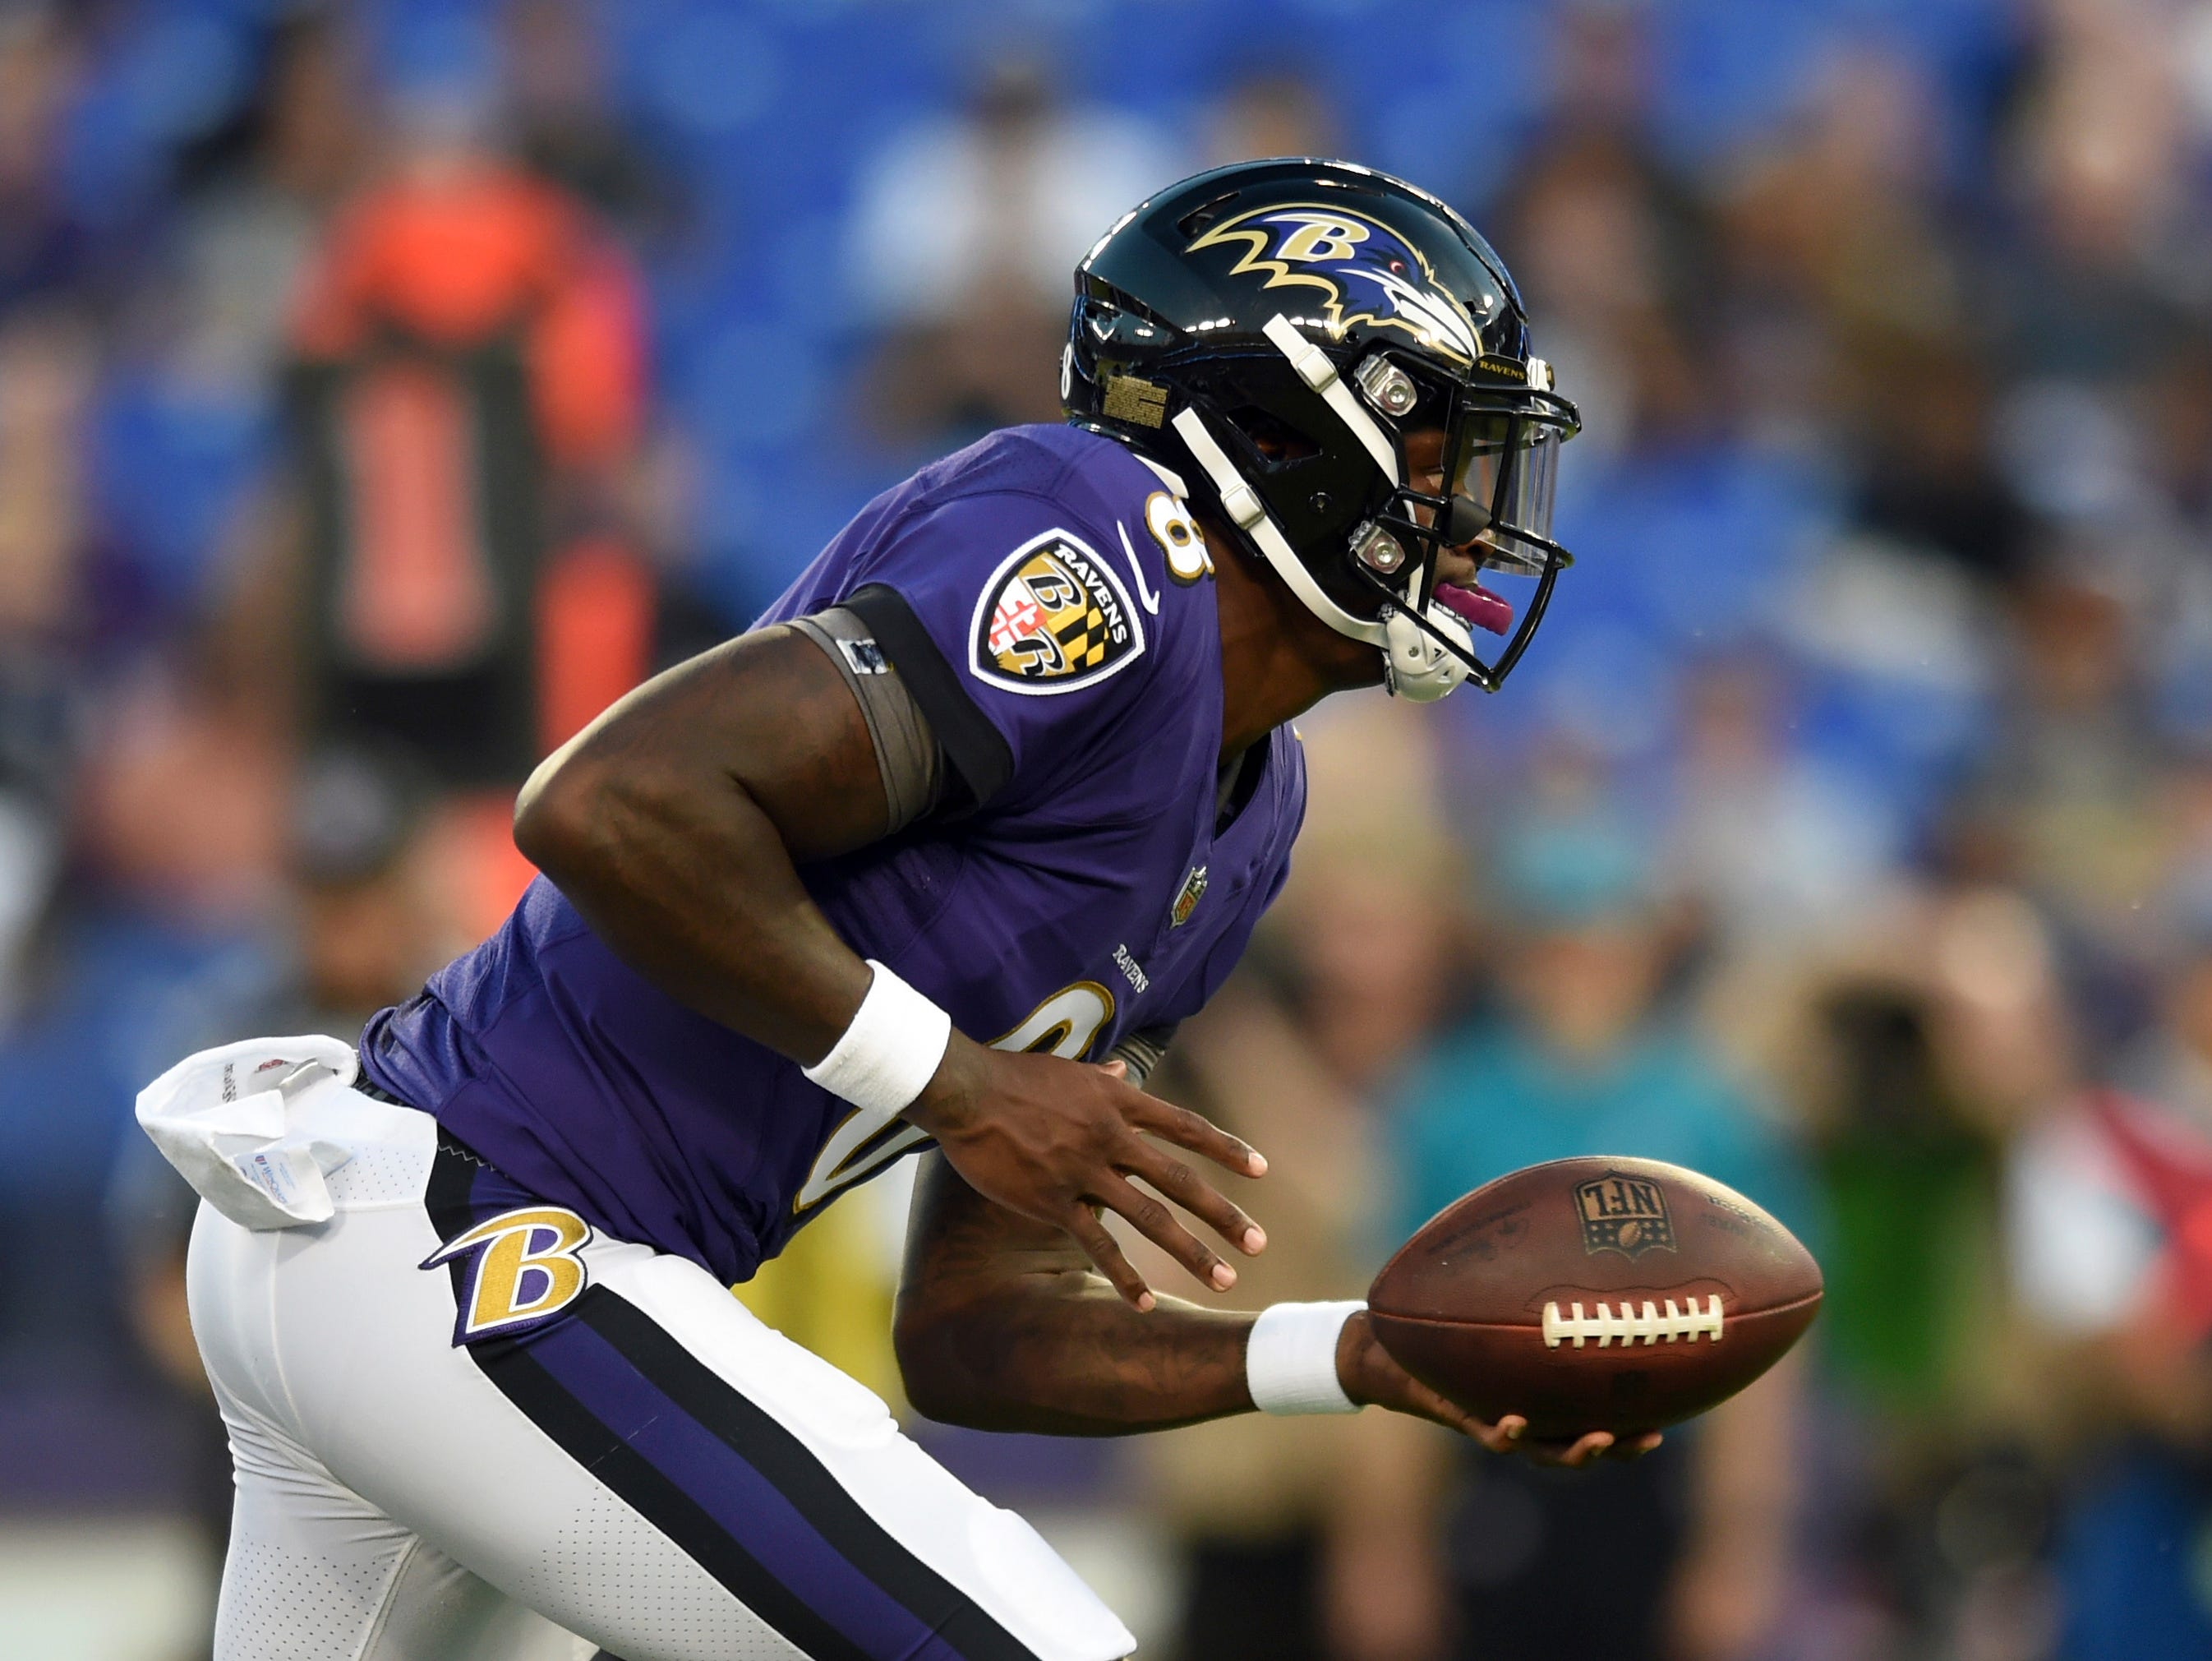 Baltimore Ravens quarterback Lamar Jackson drops back from the line of scrimmage in the first half of a preseason NFL football game against the Los Angeles Rams, Thursday, Aug. 9, 2018, in Baltimore. (AP Photo/Gail Burton)